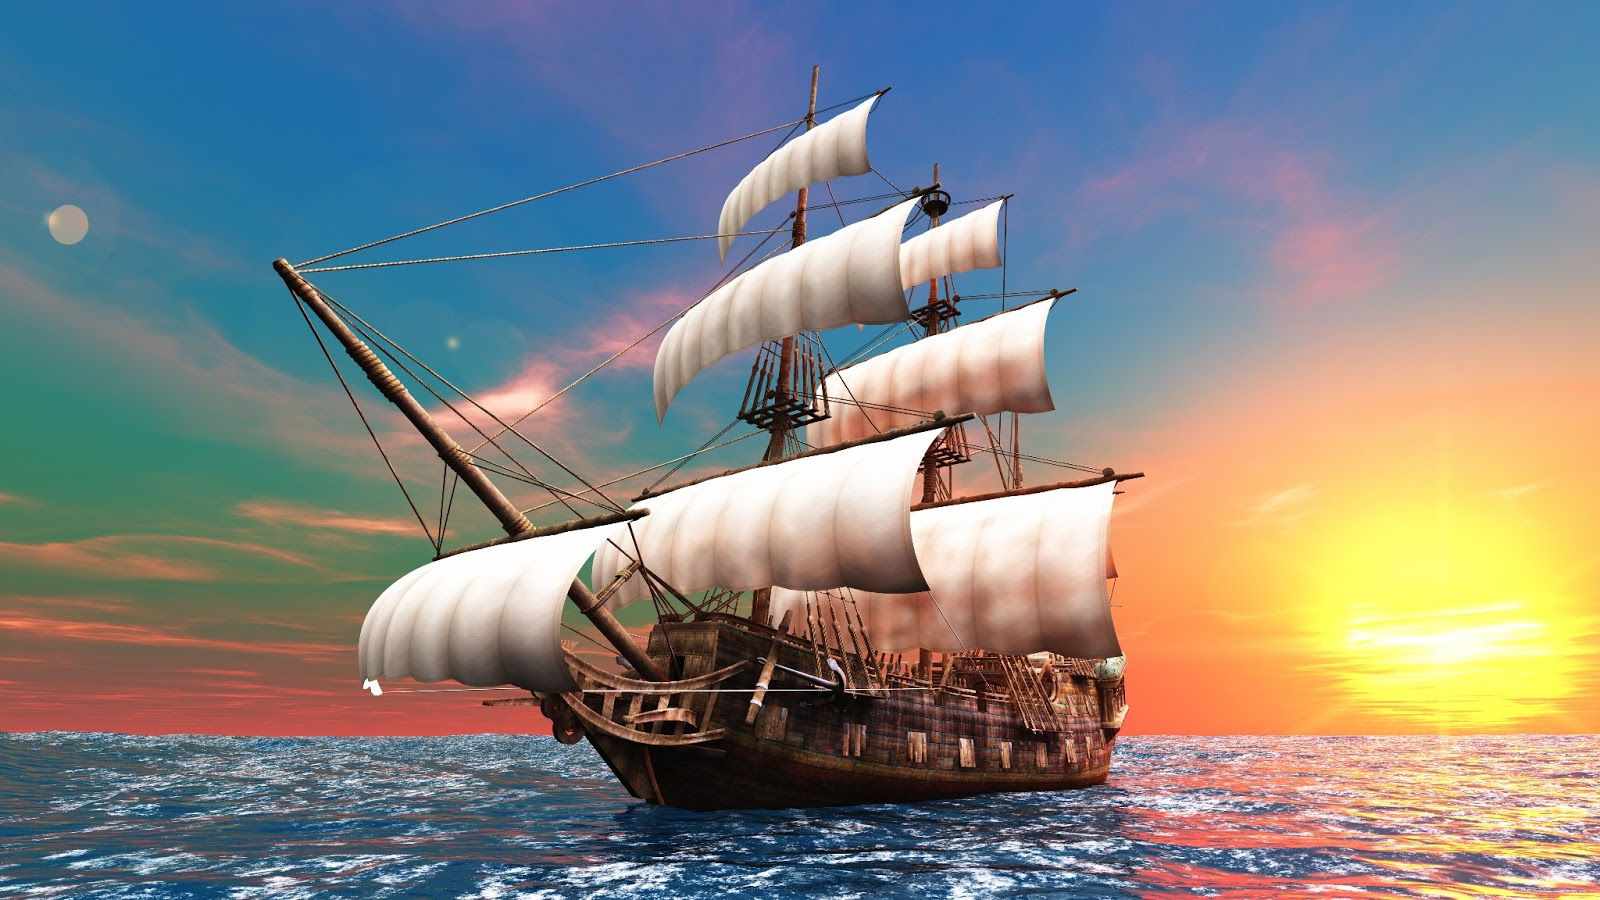 Wallpaper download mast -  Sail Wallpaper